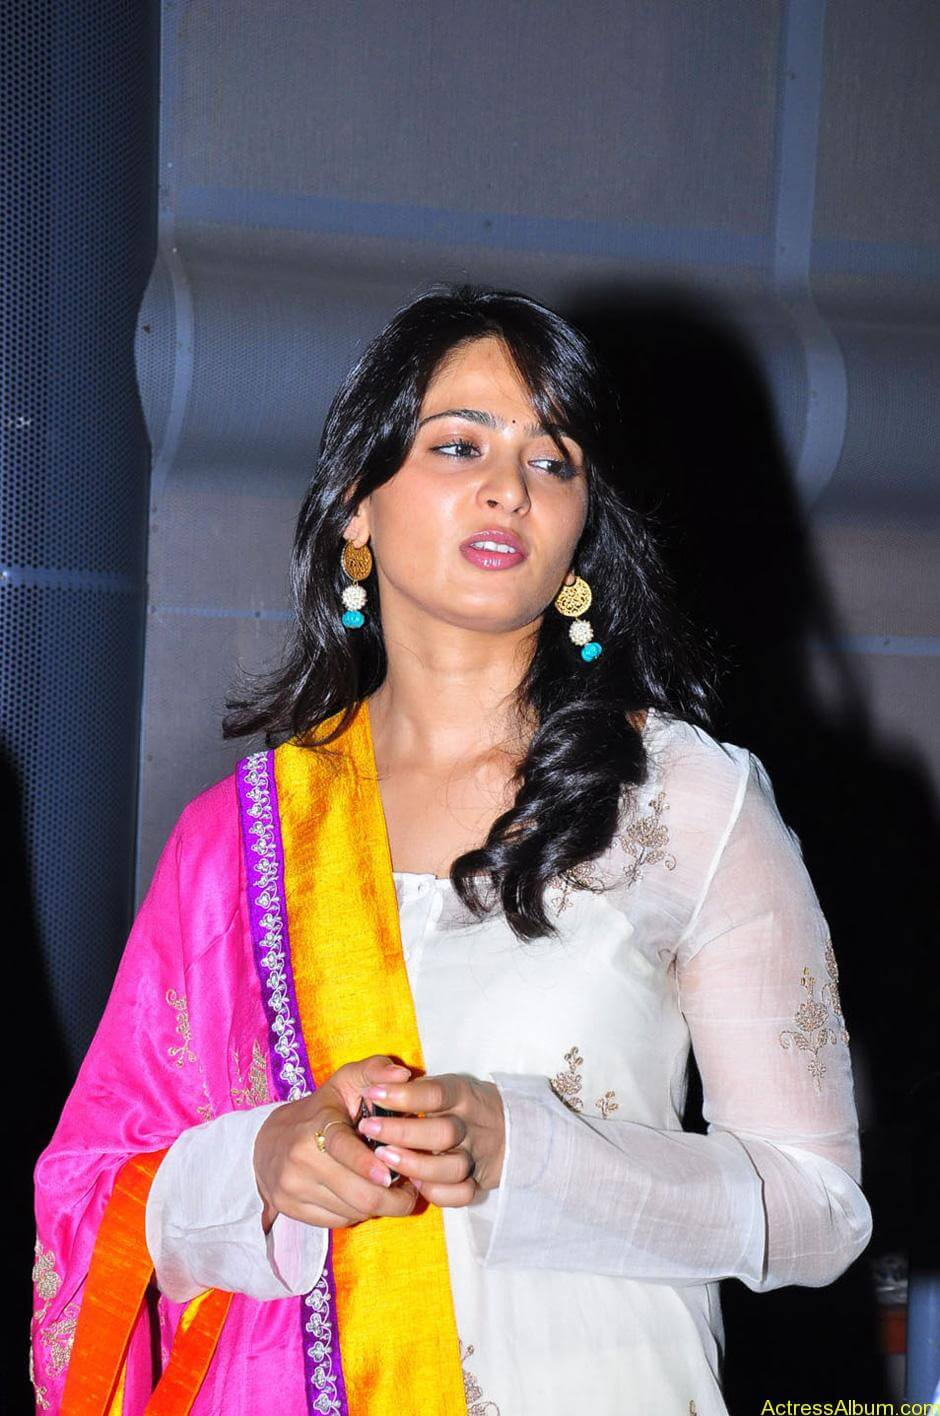 Anushka-Shetty-05-23-2011-Stills-007